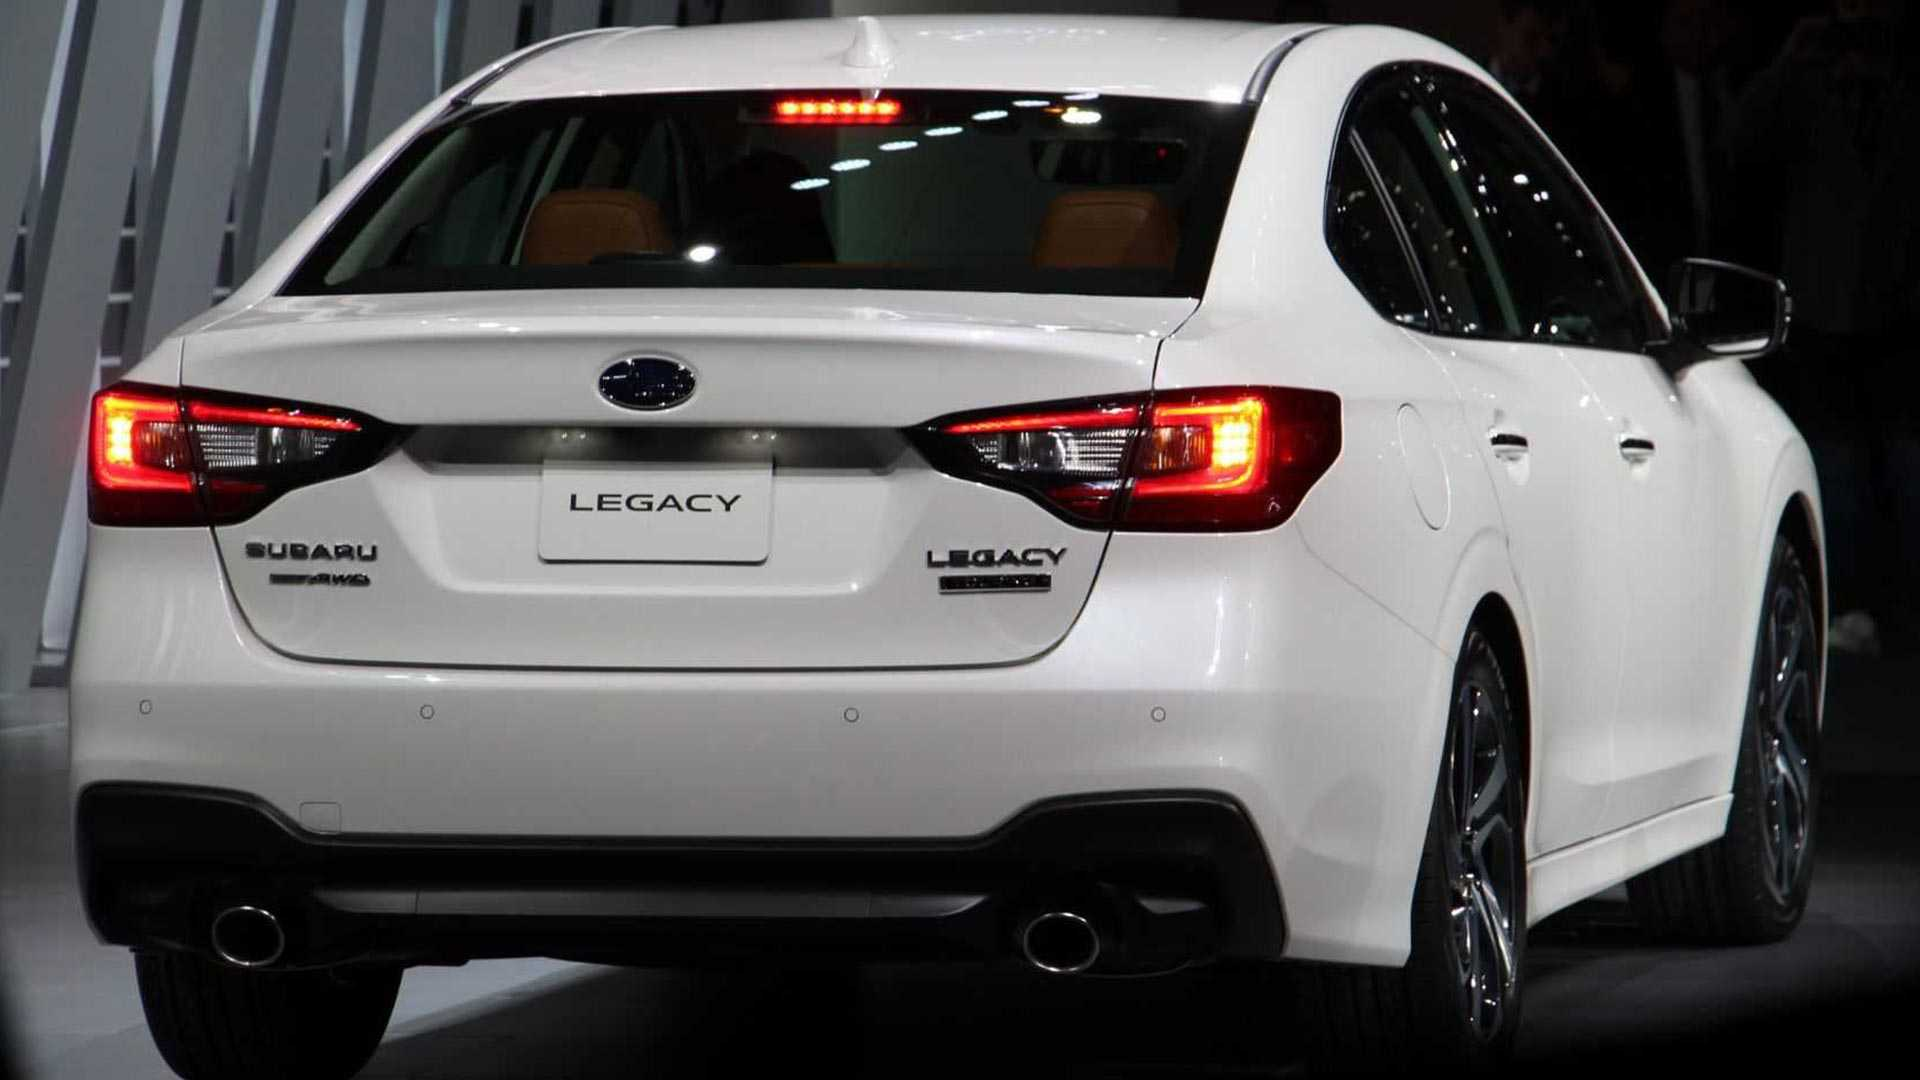 83 All New 2020 Subaru Liberty Rumors